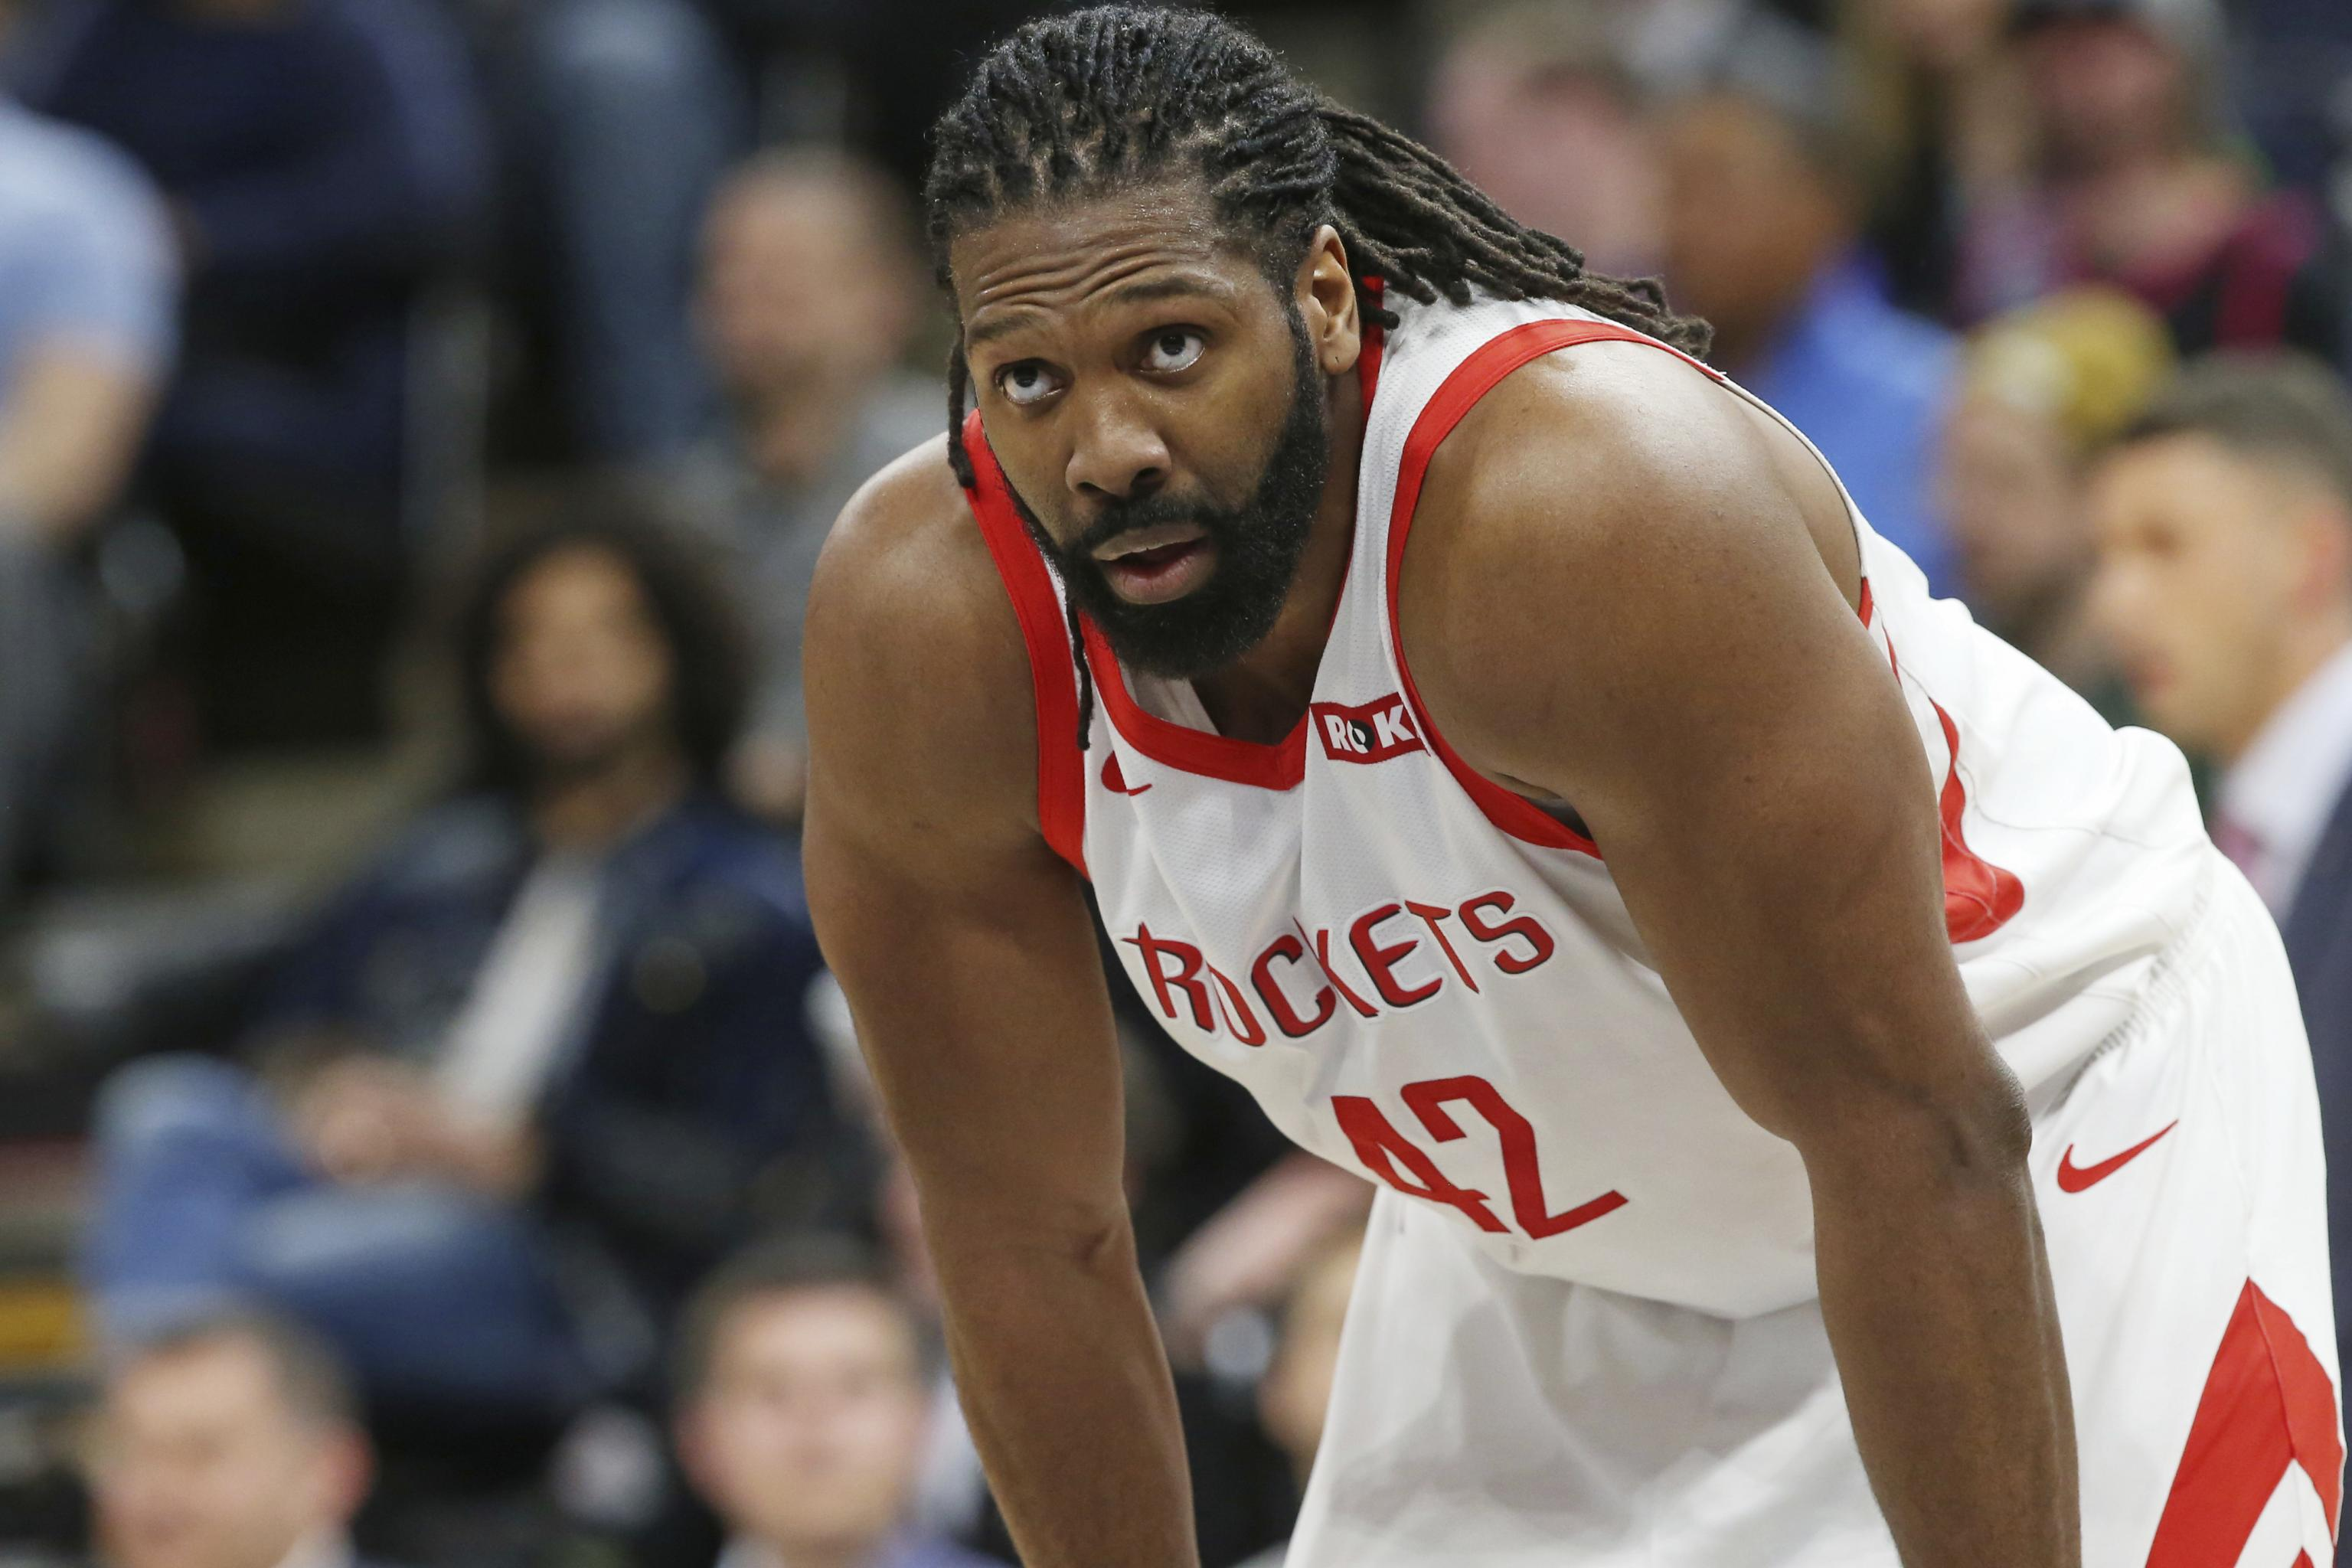 NBA Rumors: 17-Year Veteran Nene to Sign New Contract with Rockets ...